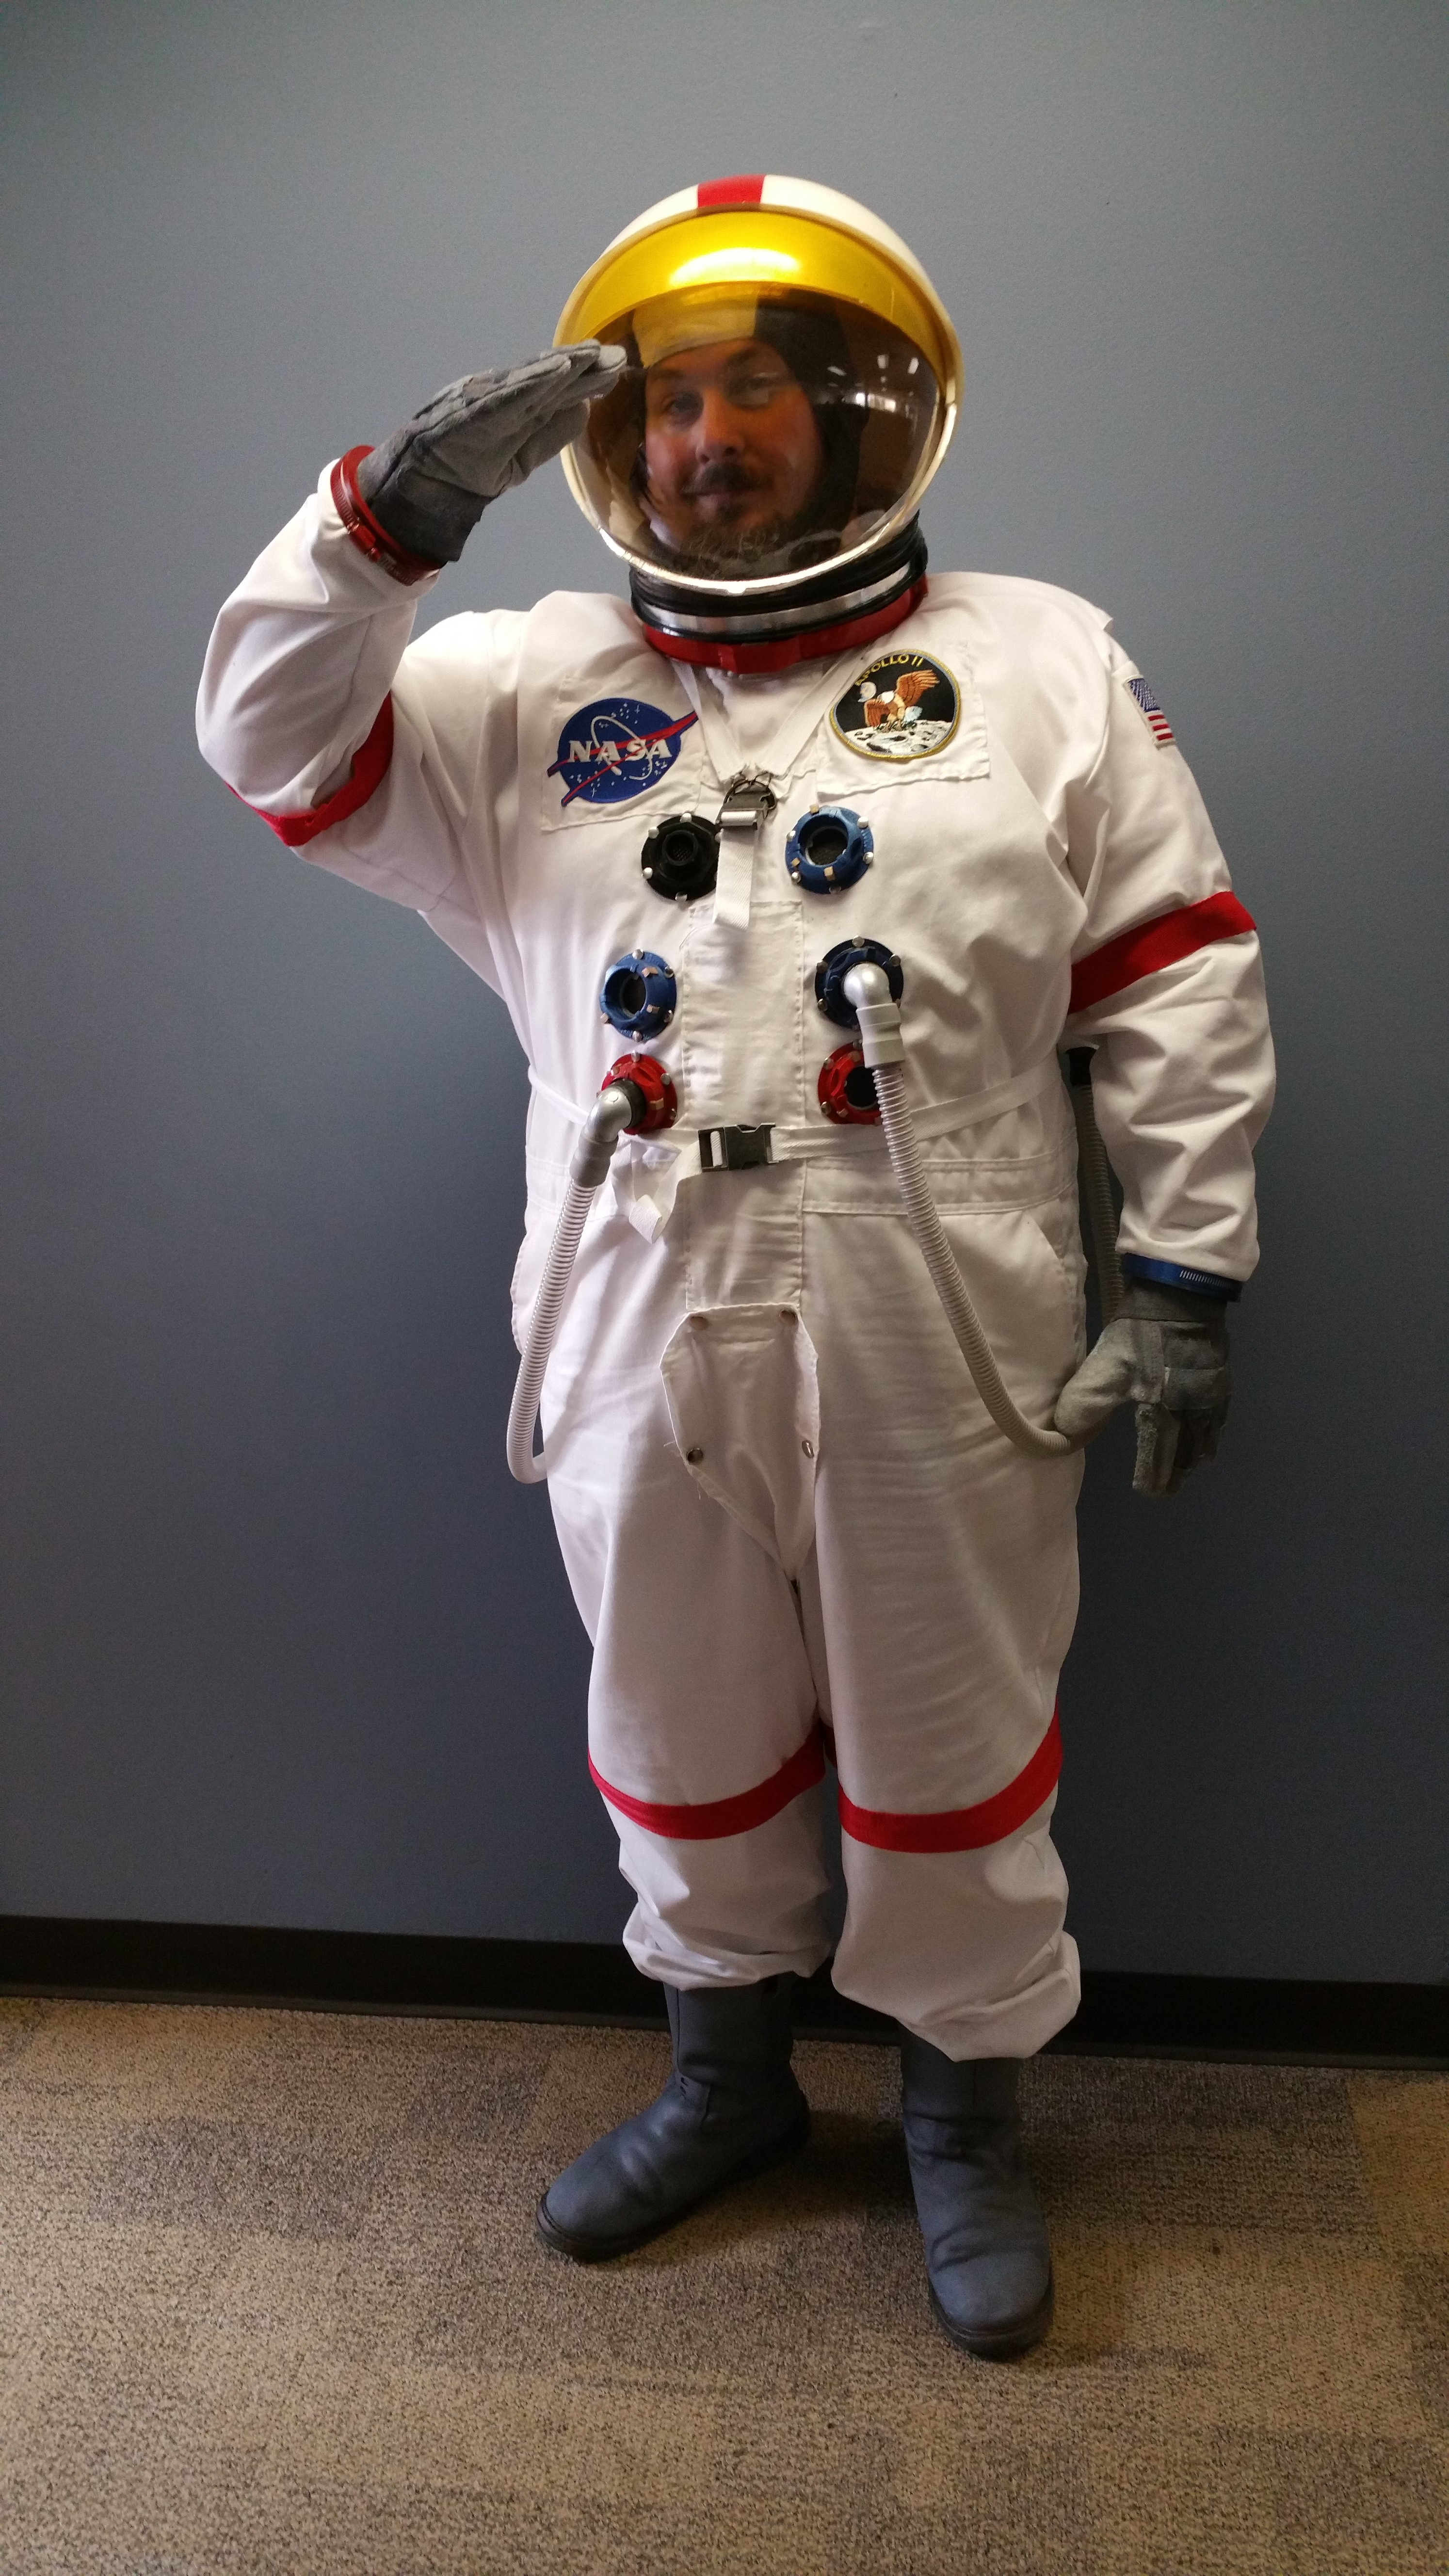 tumblr girl cosplay space suit - photo #33